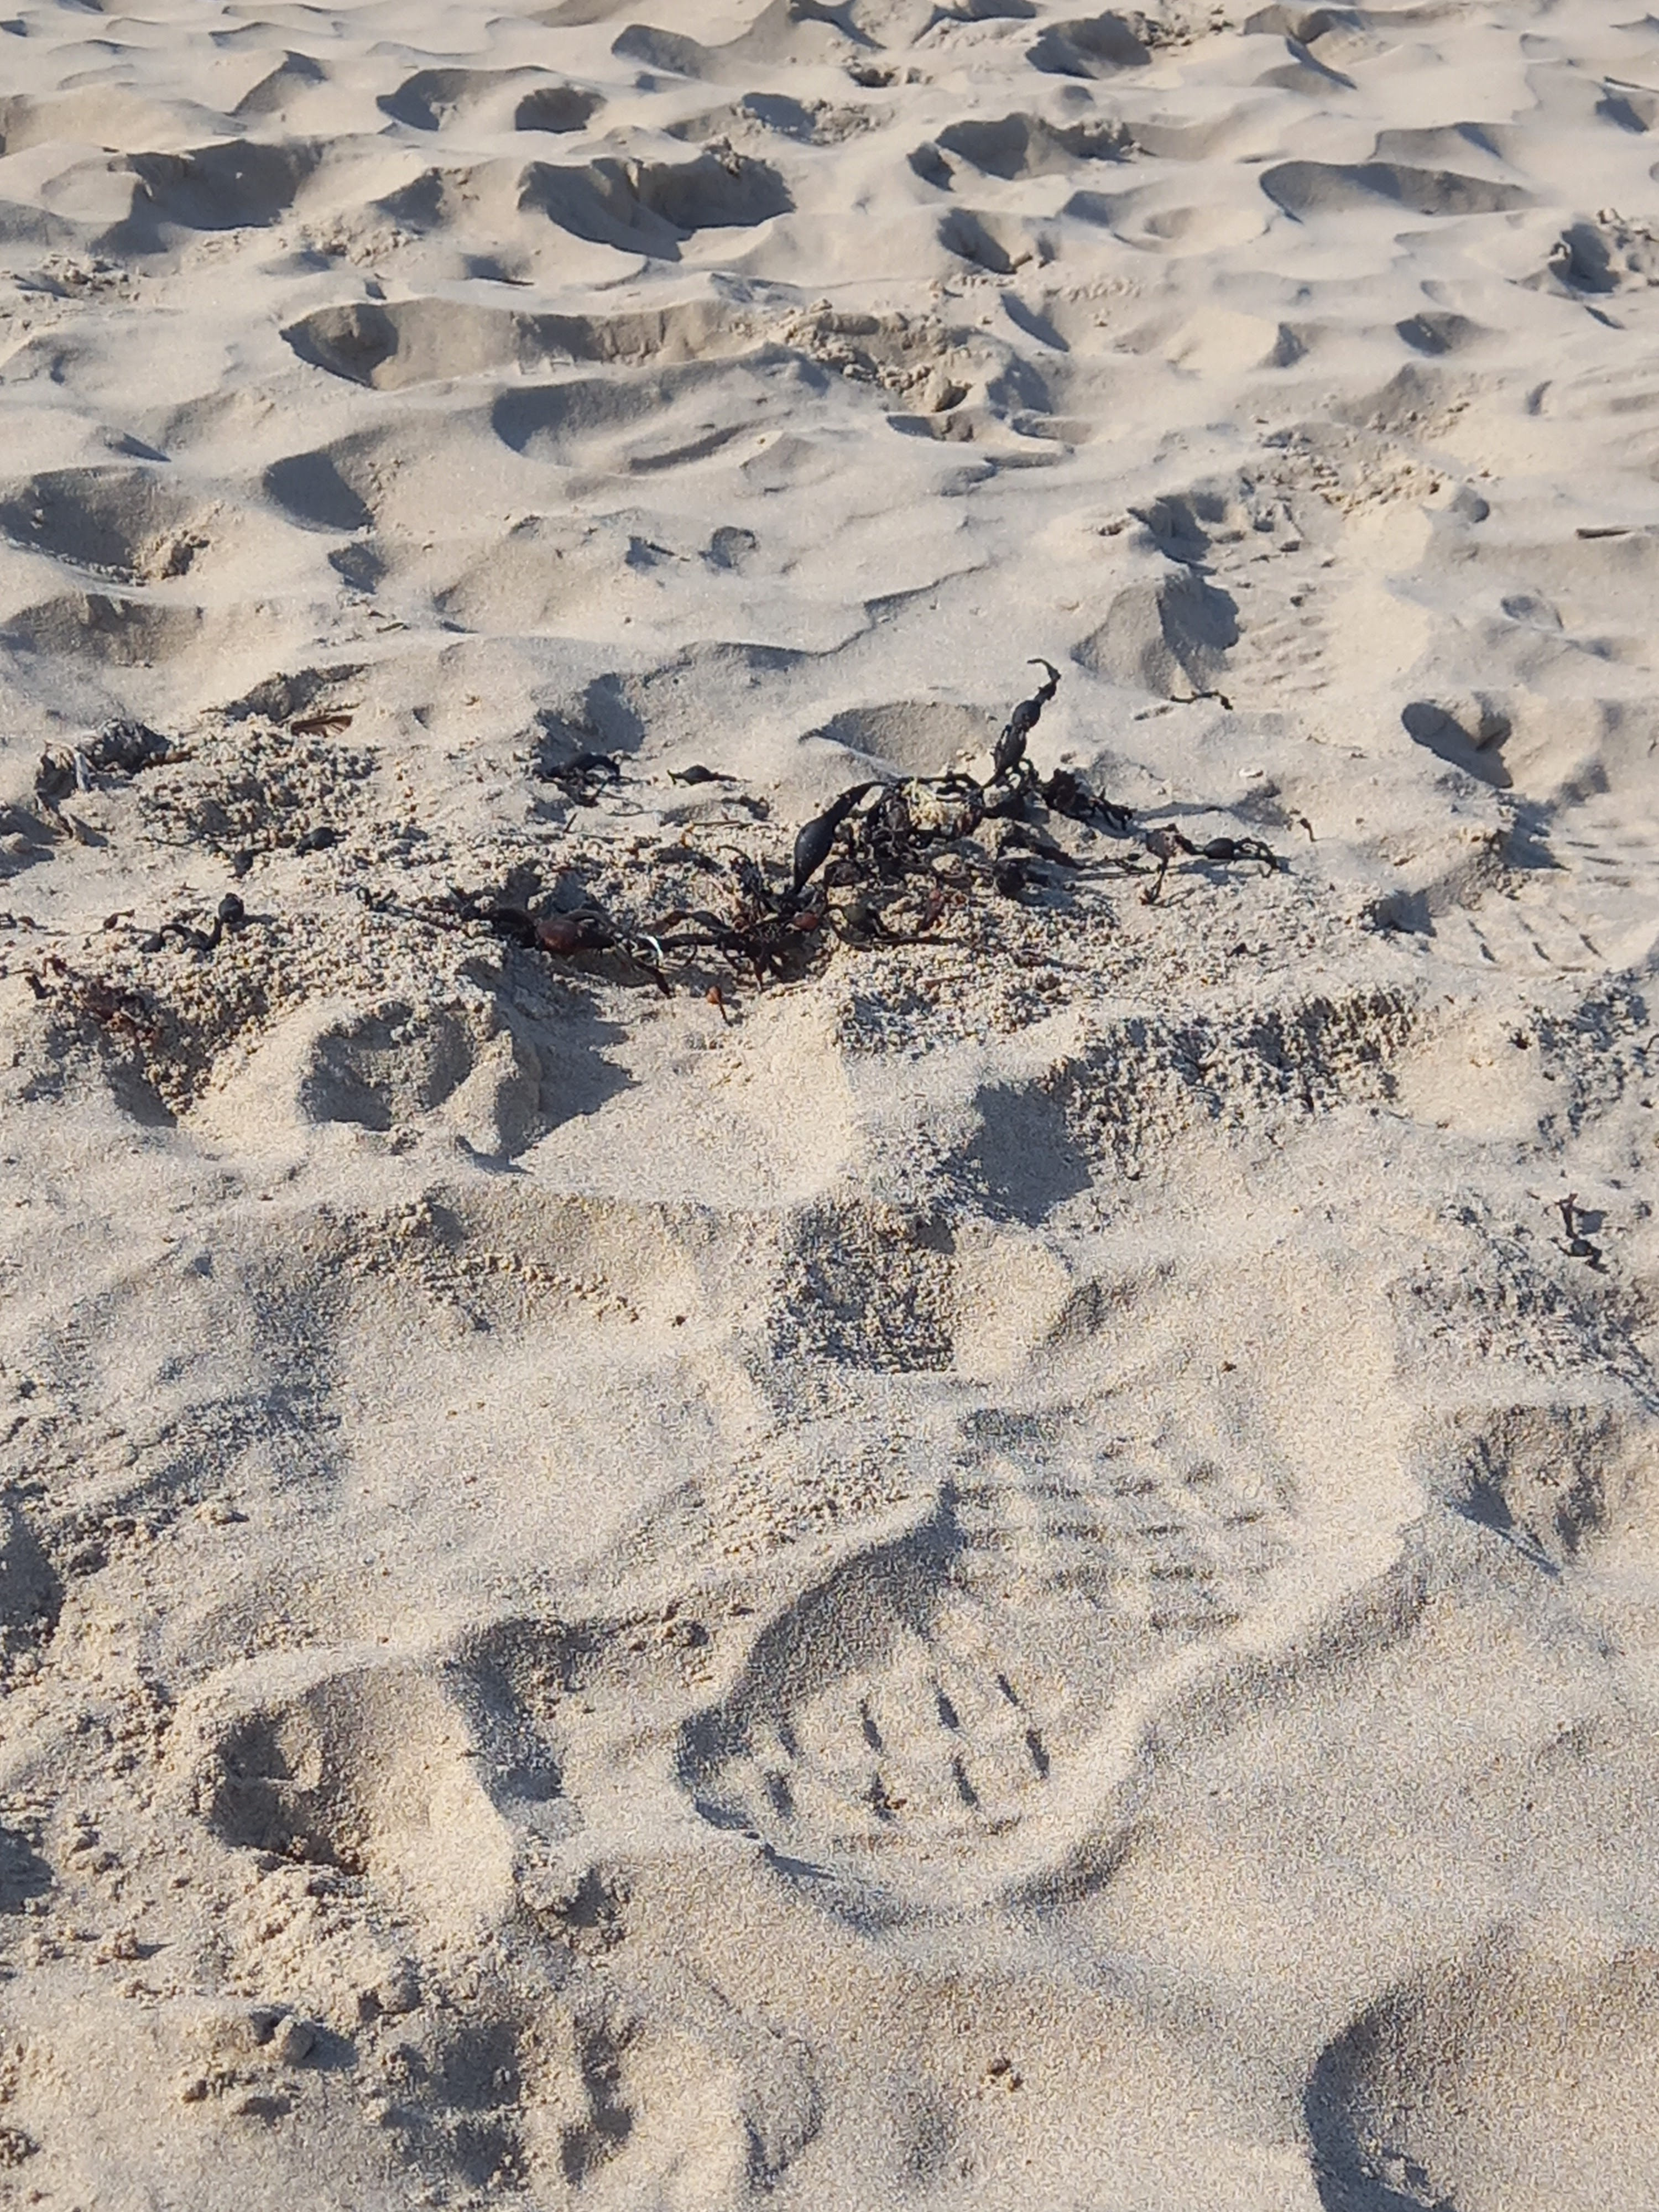 A photo of a boot print in soft sand with a piece of seaweed nearby. photographed by Diane Woodrow